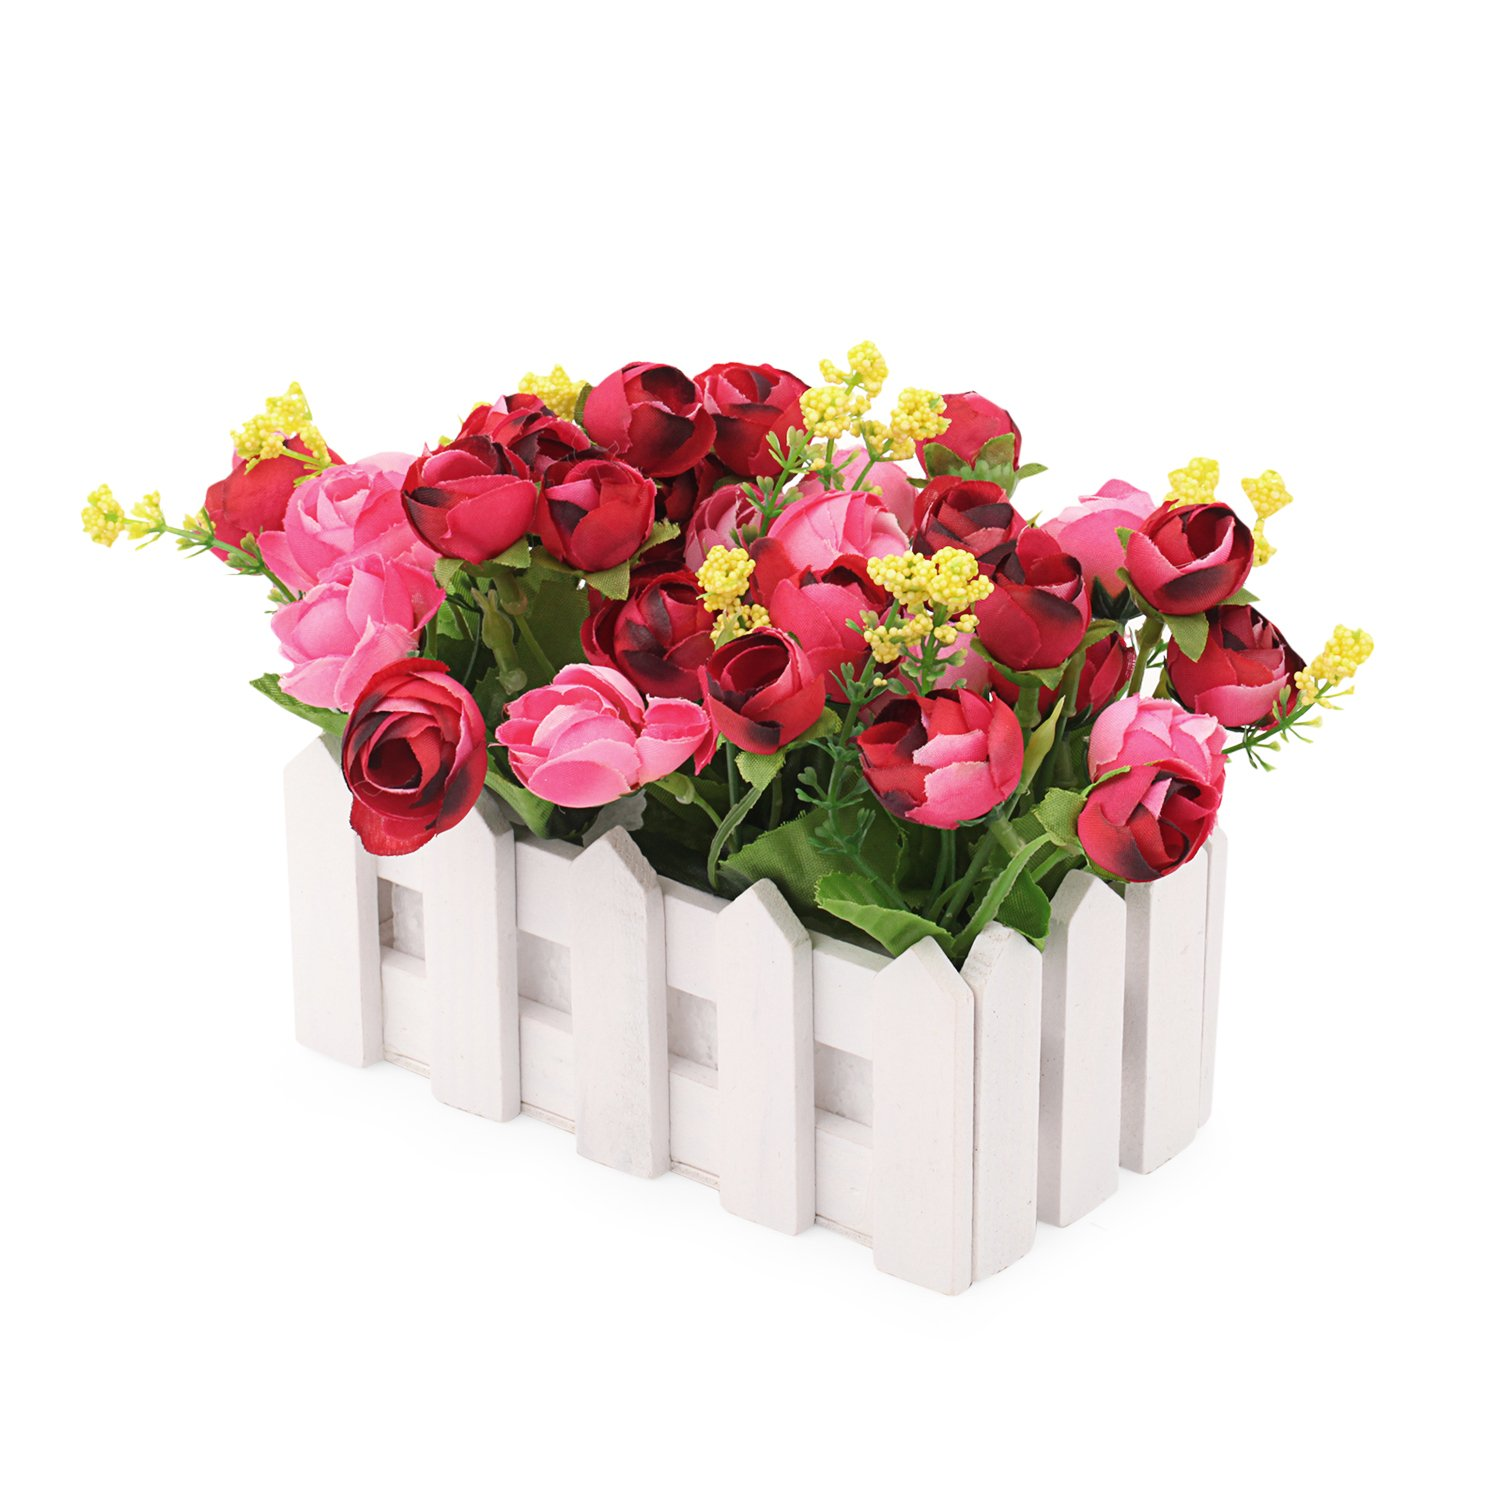 Amazon.com: Louis Garden Artificial Flowers Fake Rose in Picket ...